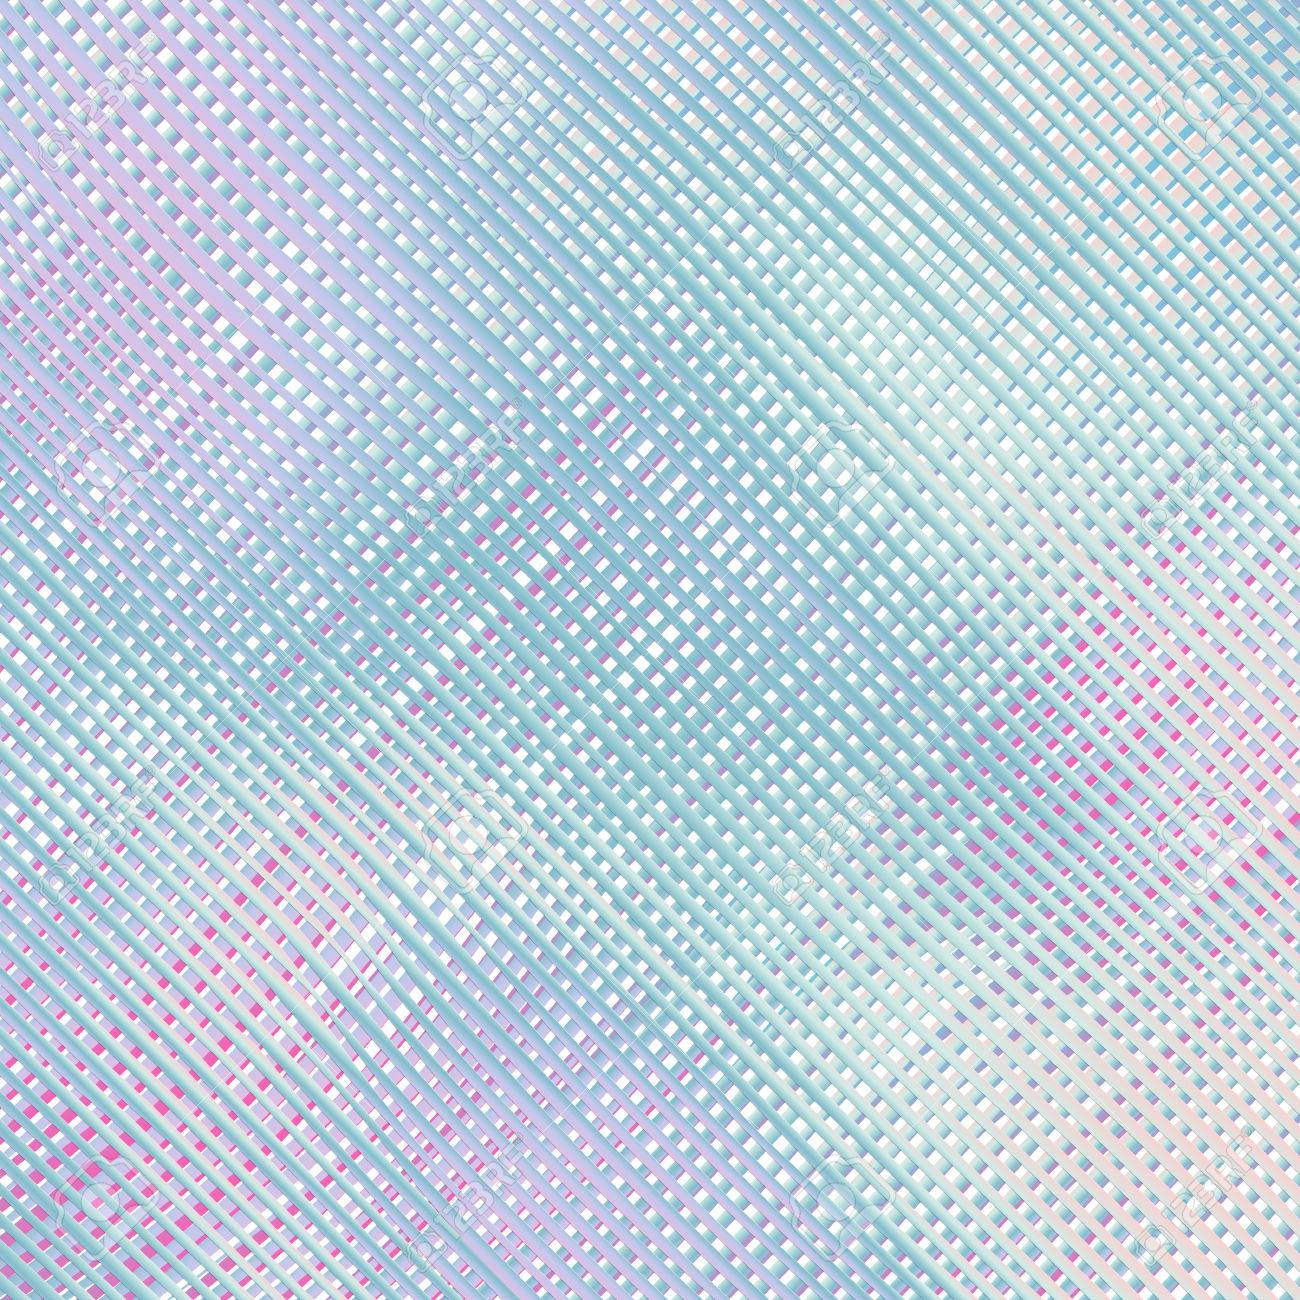 Sophisticated Blue Red And White Diagonal Lines For Backgrounds 1300x1300